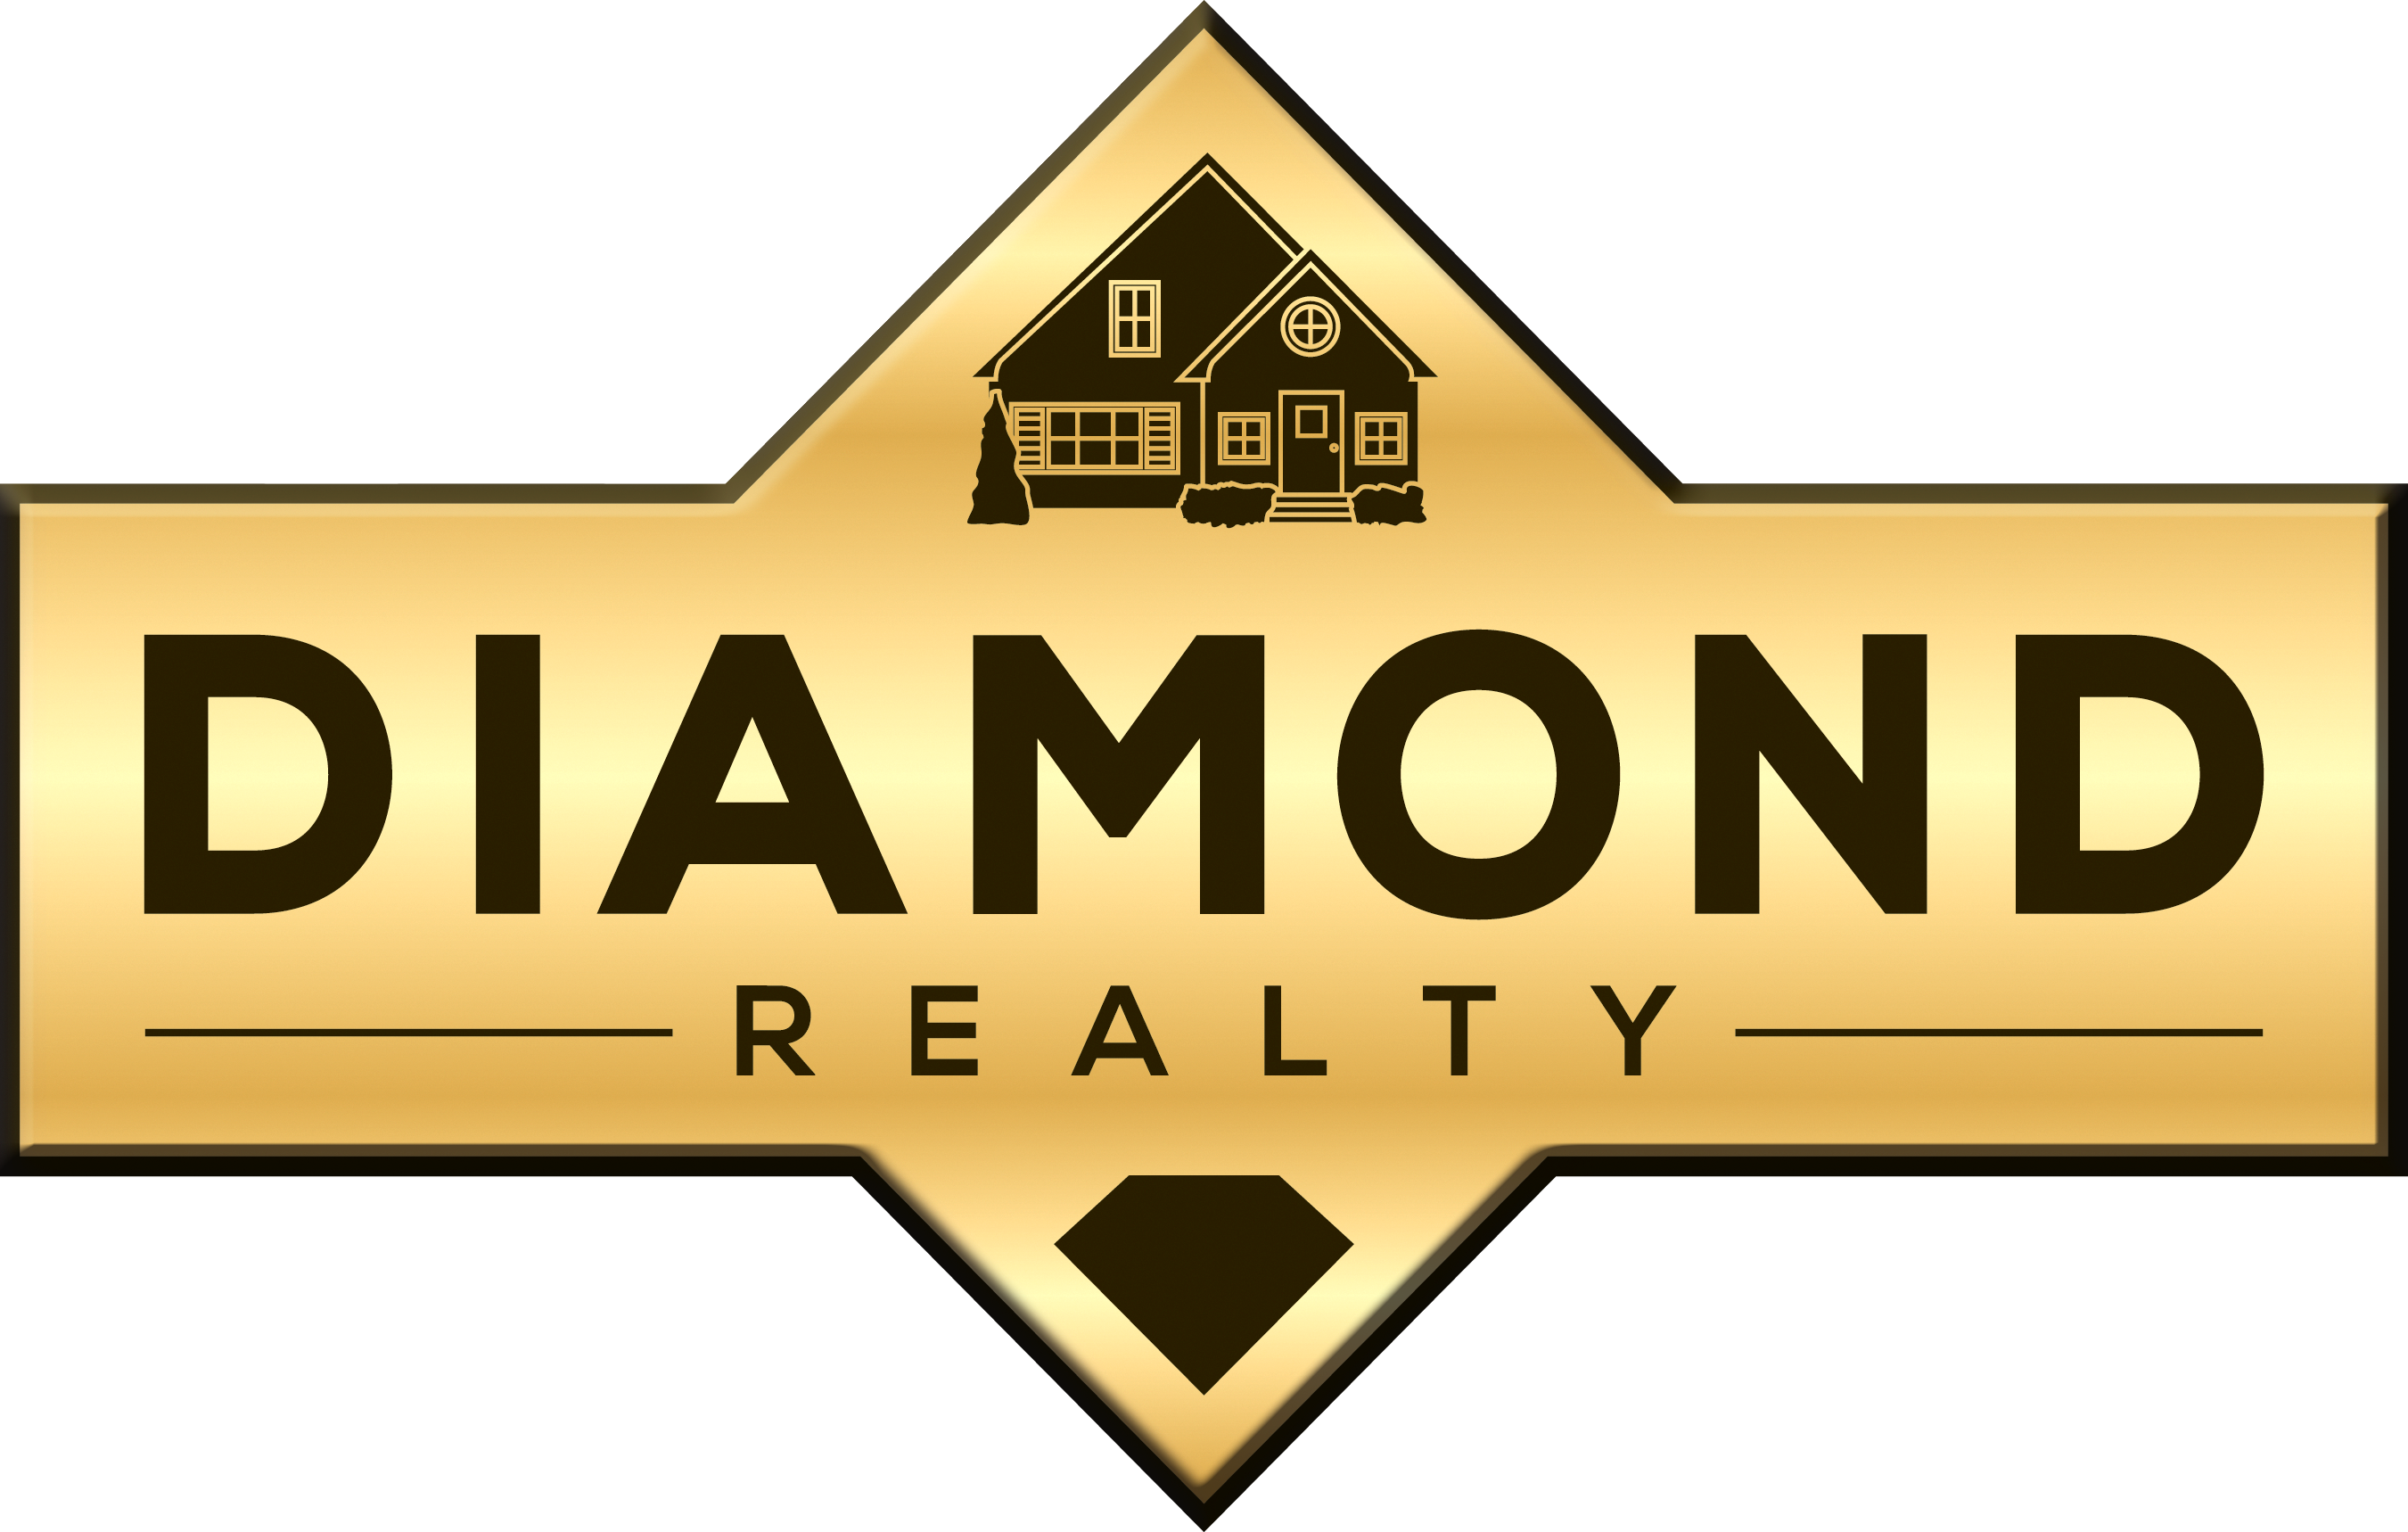 Diamond Realty Real Estate